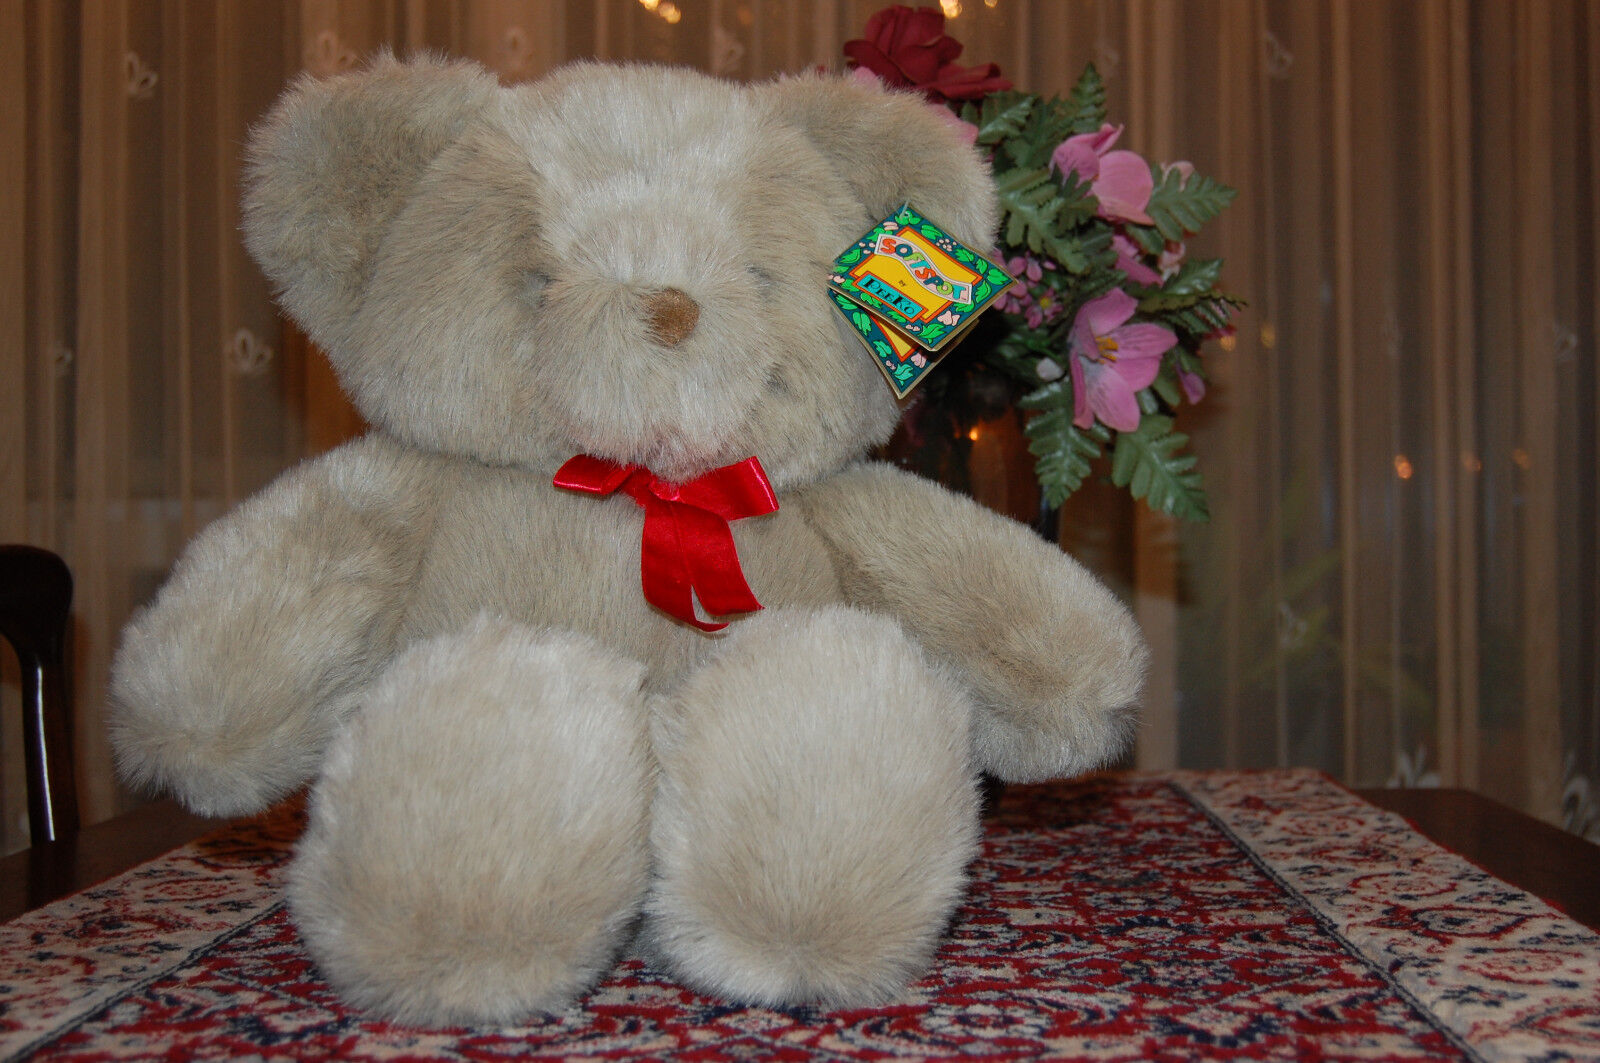 UK Isle of Man grigio Bear Soft Spot Peeko 18.5 In. 1994 with Tags Gorgeous